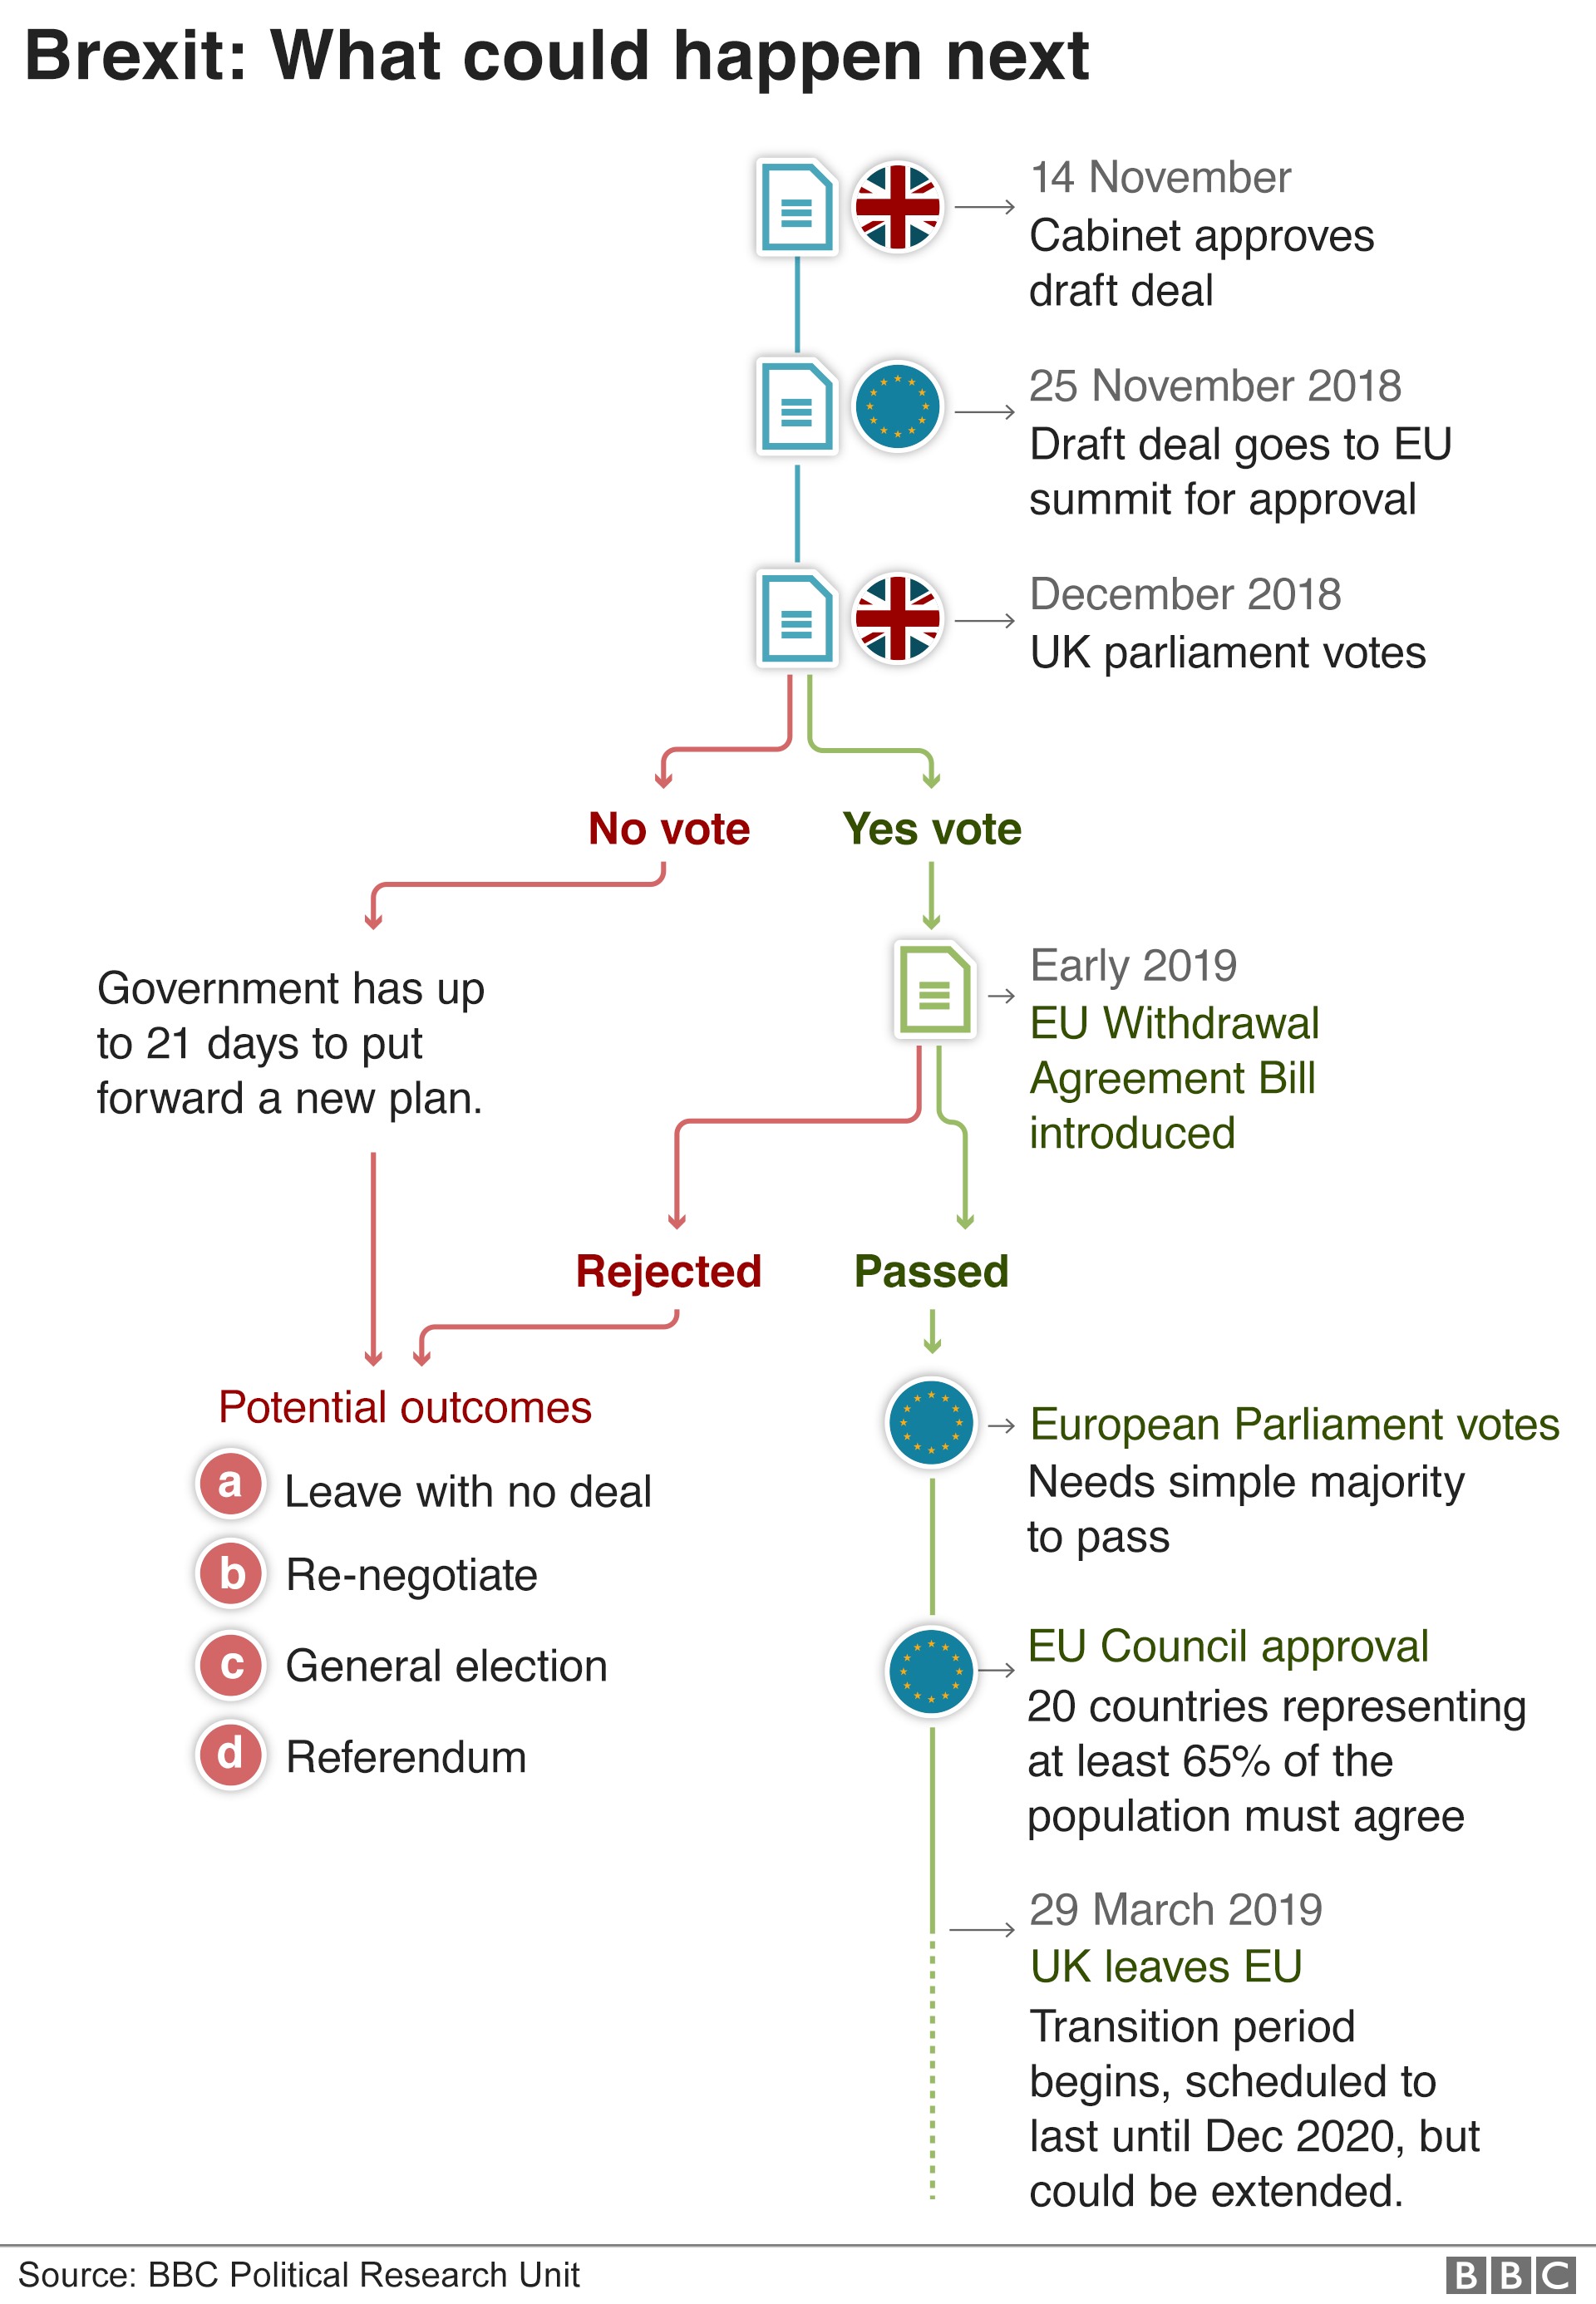 A flow chart showing what could happen next in the Brexit process.